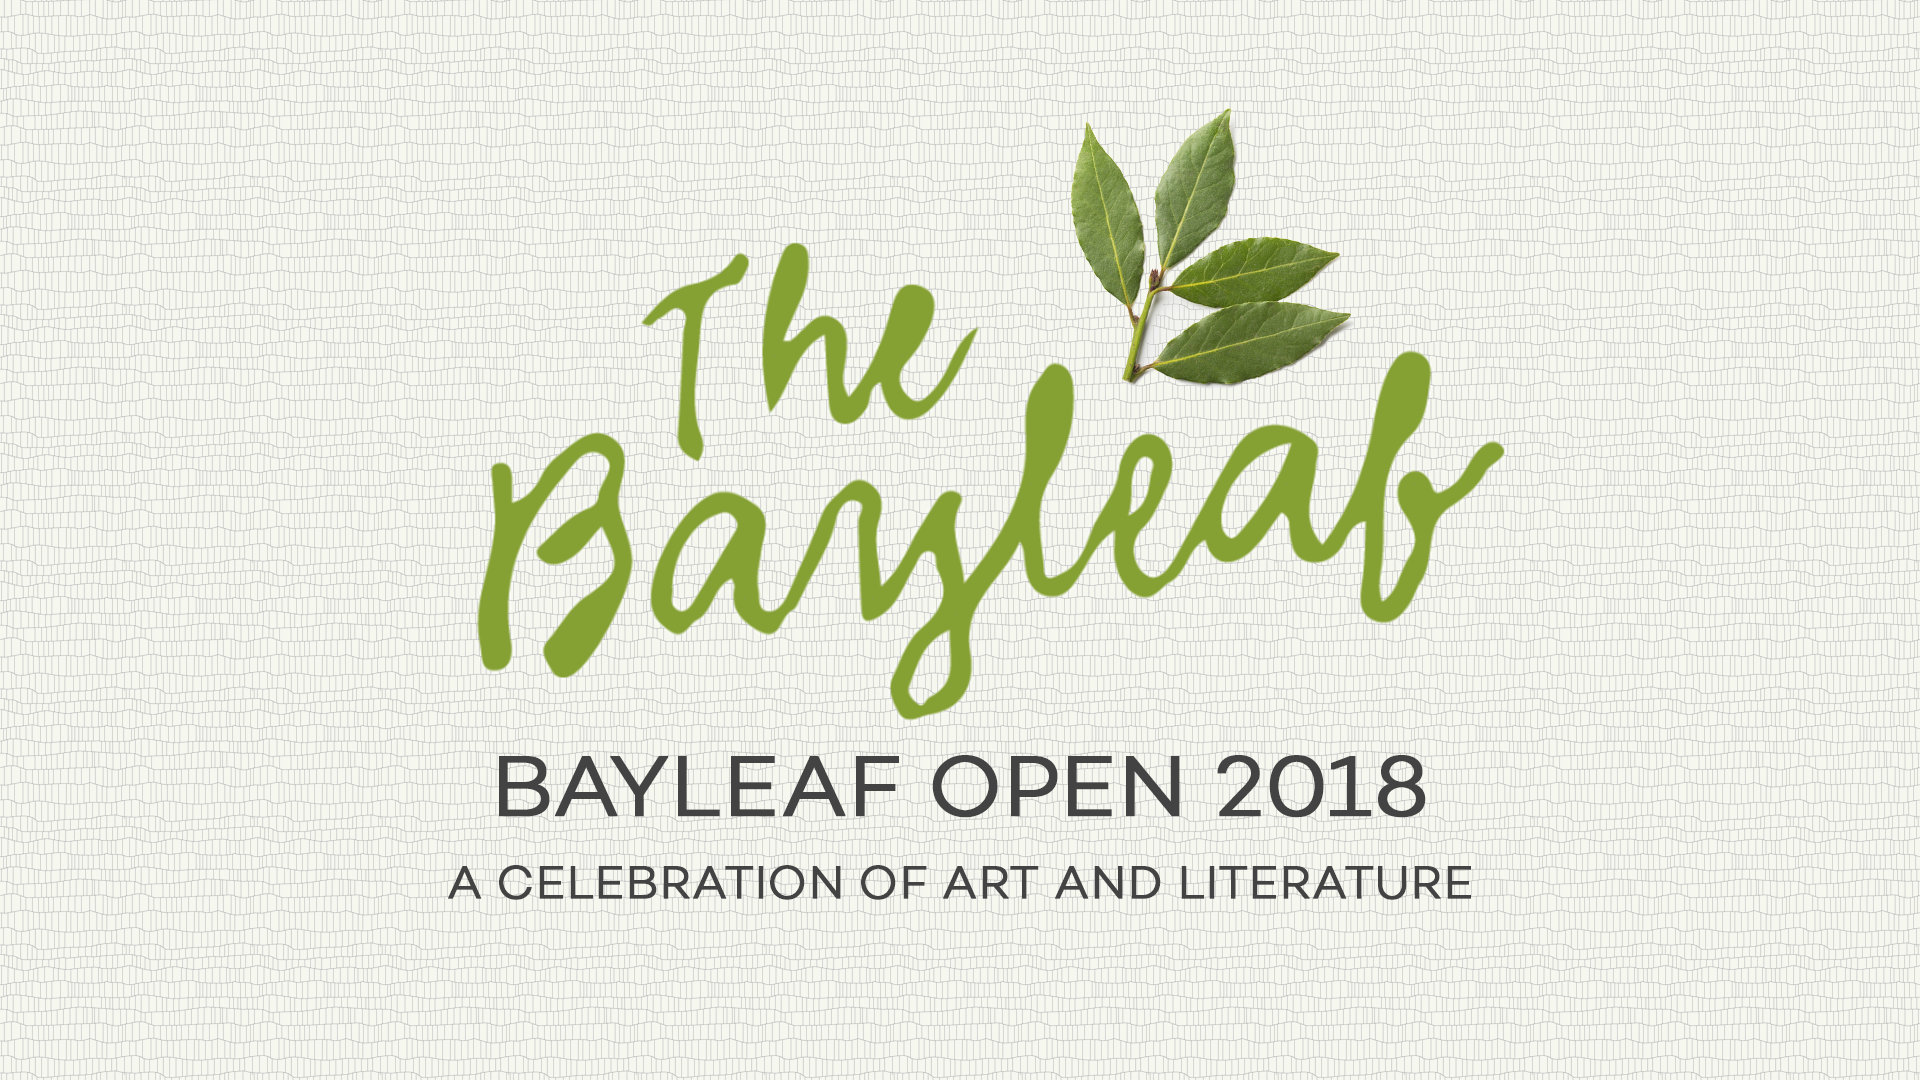 The Bayleaf Open 2018: A Celebration of Art and Literature